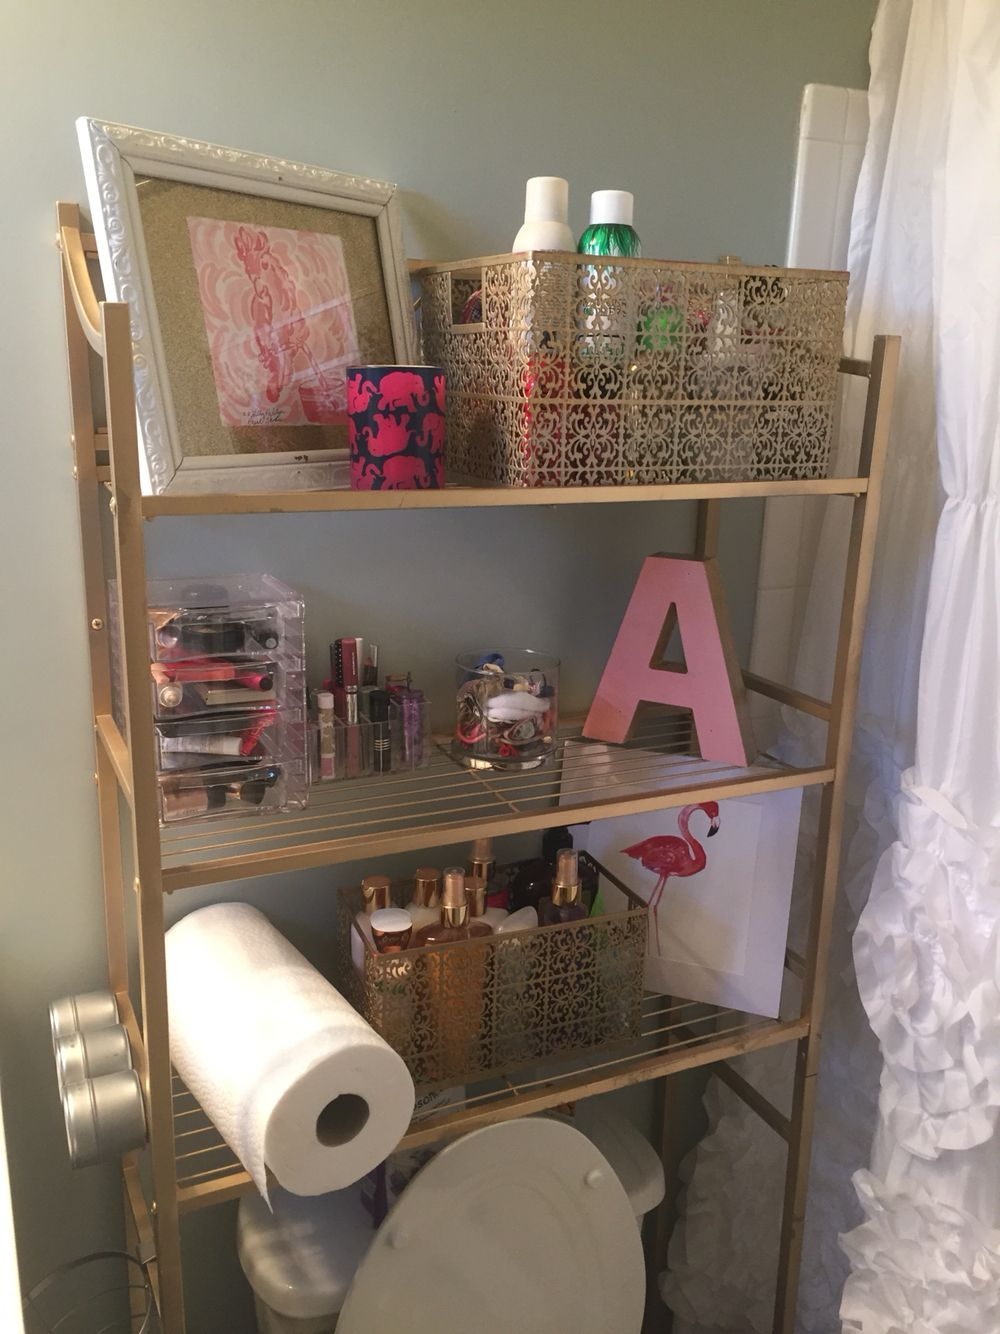 Kate spade inspired bathroom organization/ Lilly Pulitzer ...